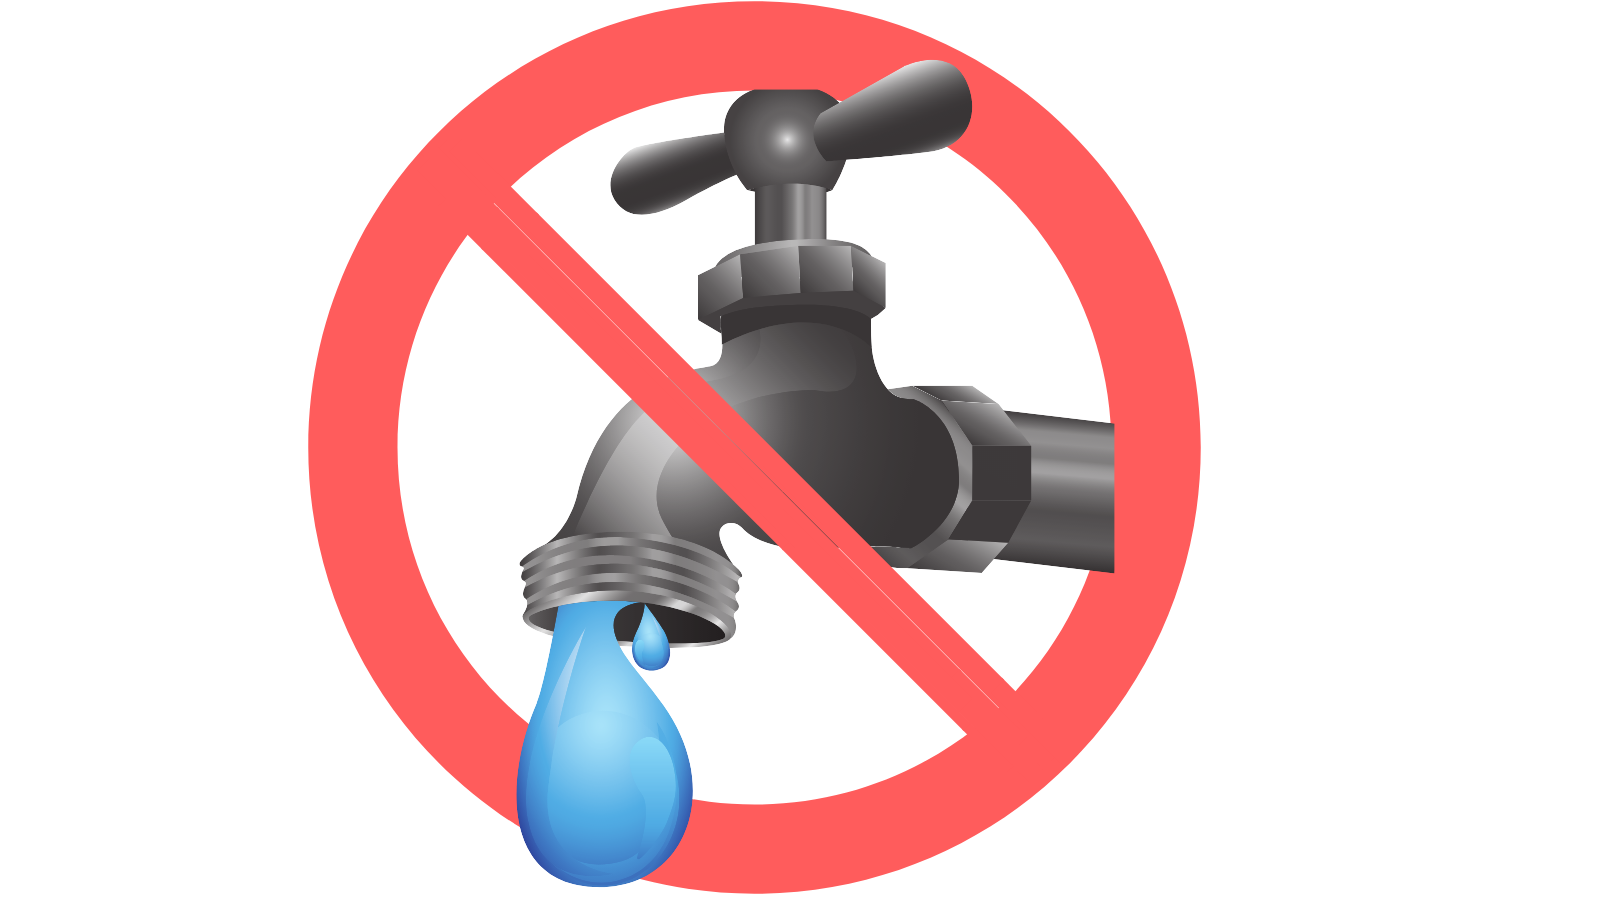 No tap water